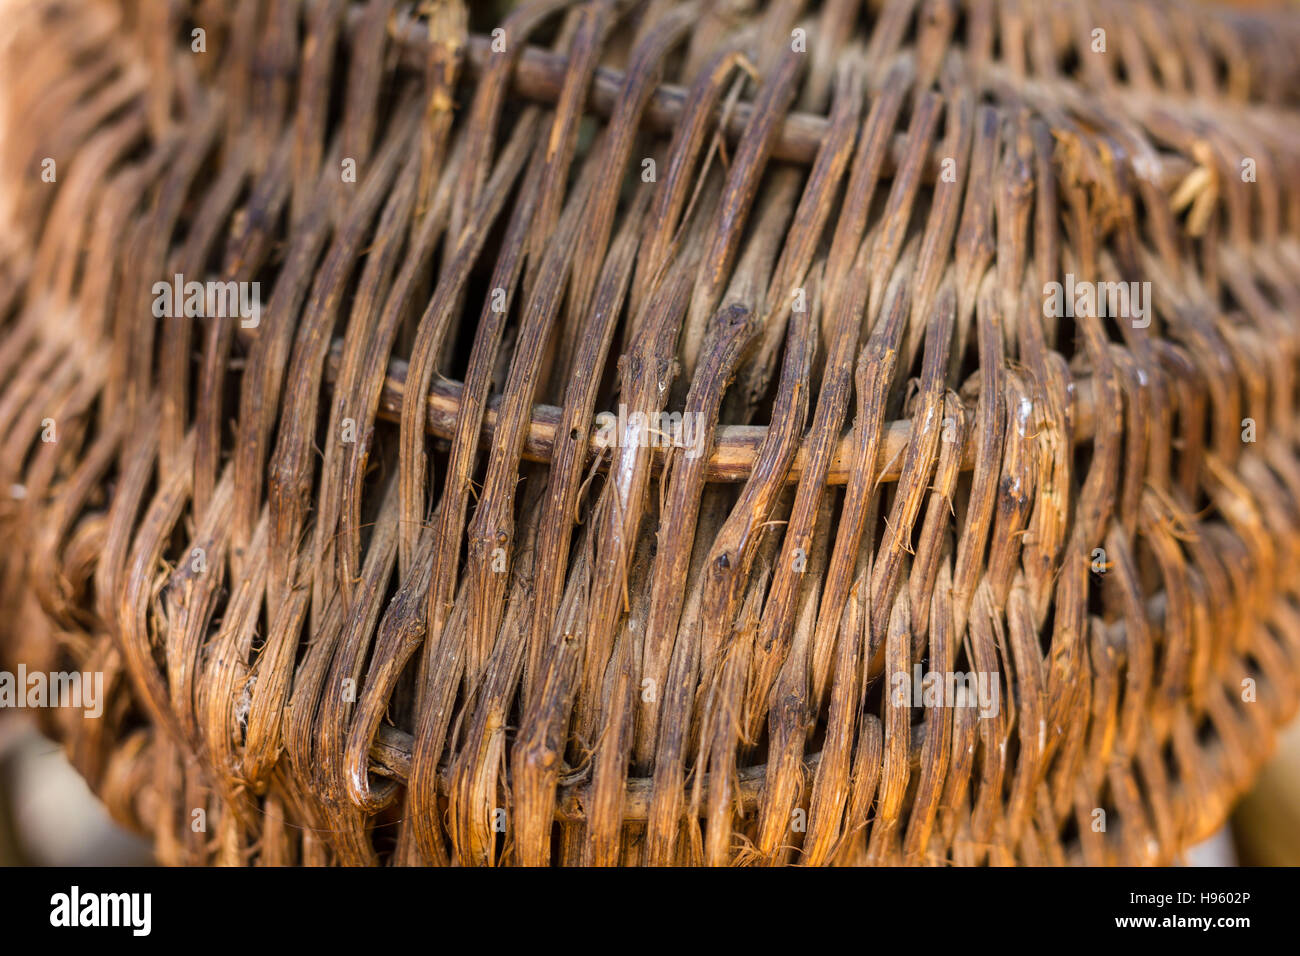 Basket Of Wicker Or Rattan Or Bamboo Material For Texture Or Stock